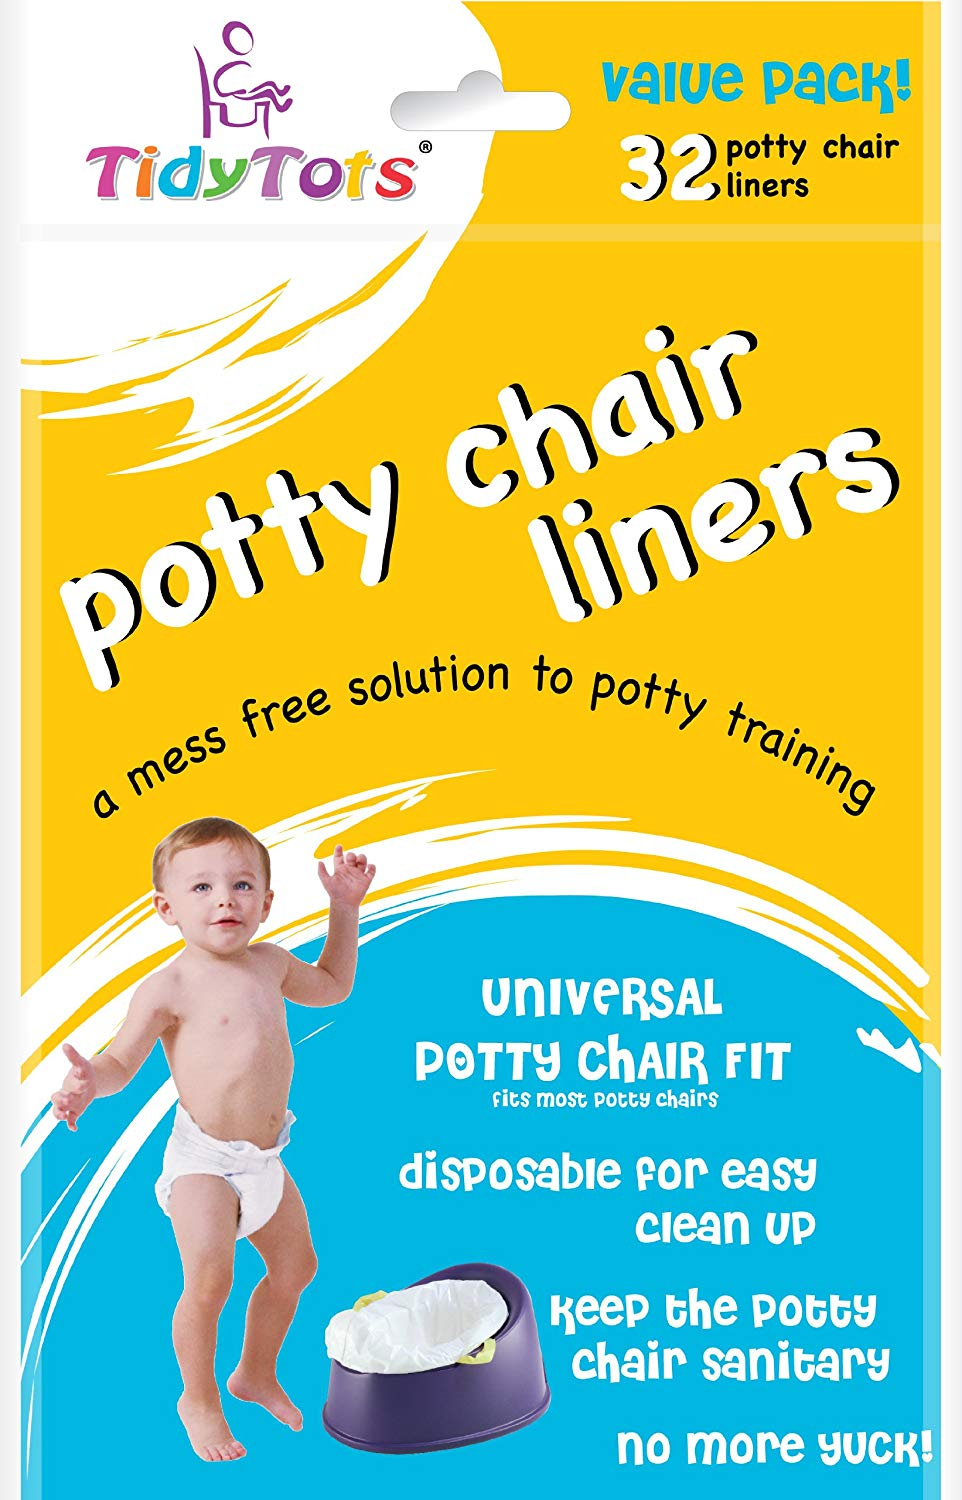 how to potty train in 3 days -potty chair liners - shegotguts.jpg